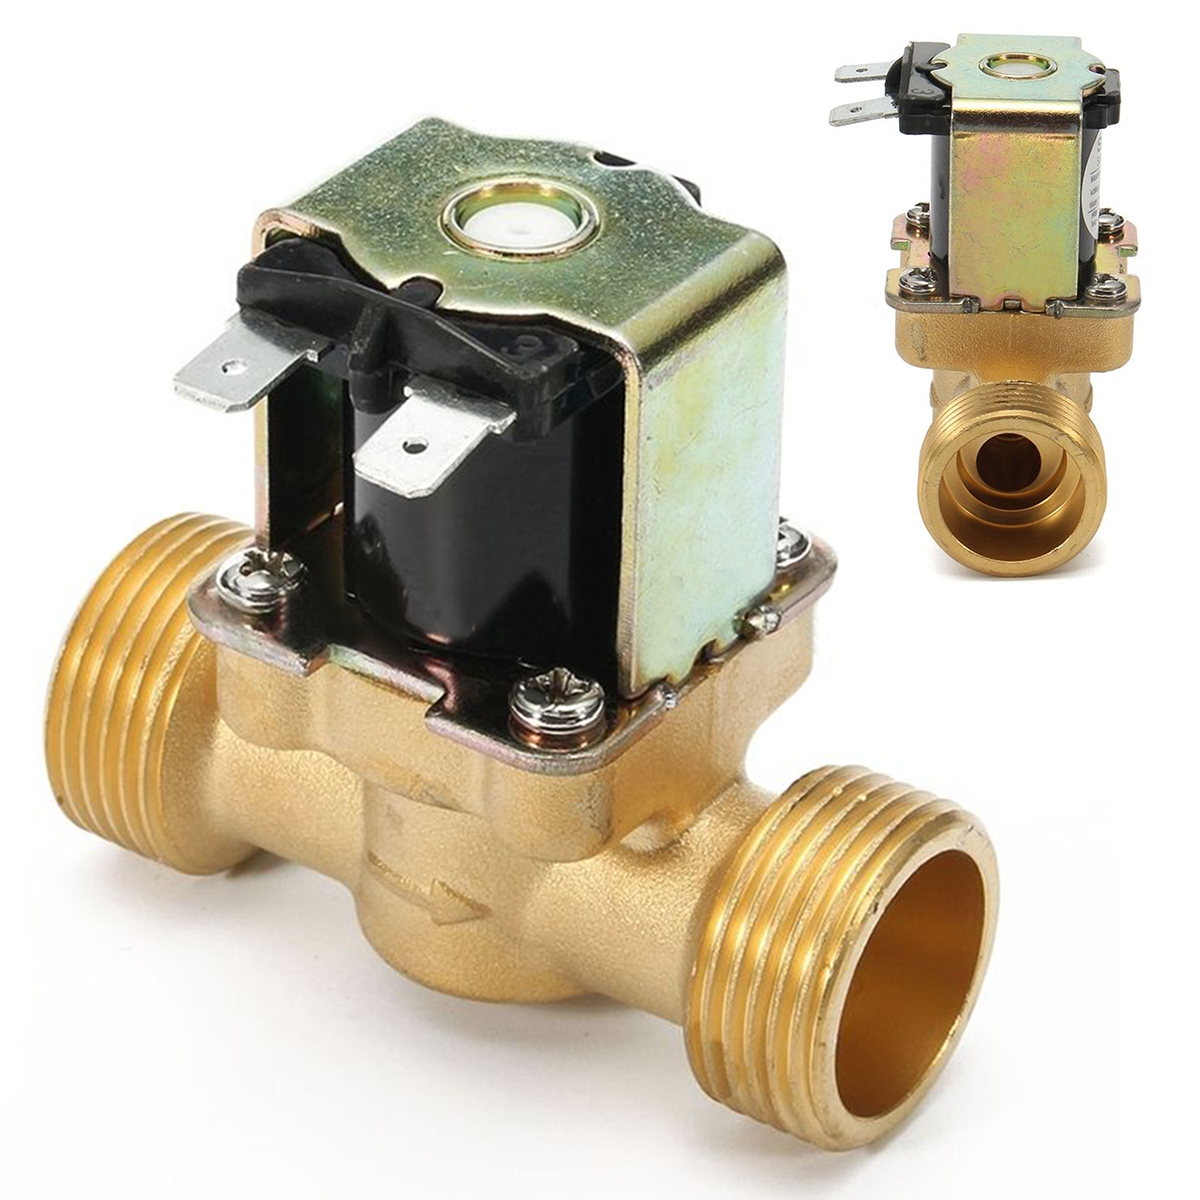 NEW New 3/4 INCH NPSM 12V DC Slim Brass Electric Solenoid Valve Gas Water Air Normally Closed 2 Way 2 Position Diaphragm Val 3 4 solenoid valve normally closed npsm 12v dc slim brass electric solenoid valve gas water air 2 way 2 position valves